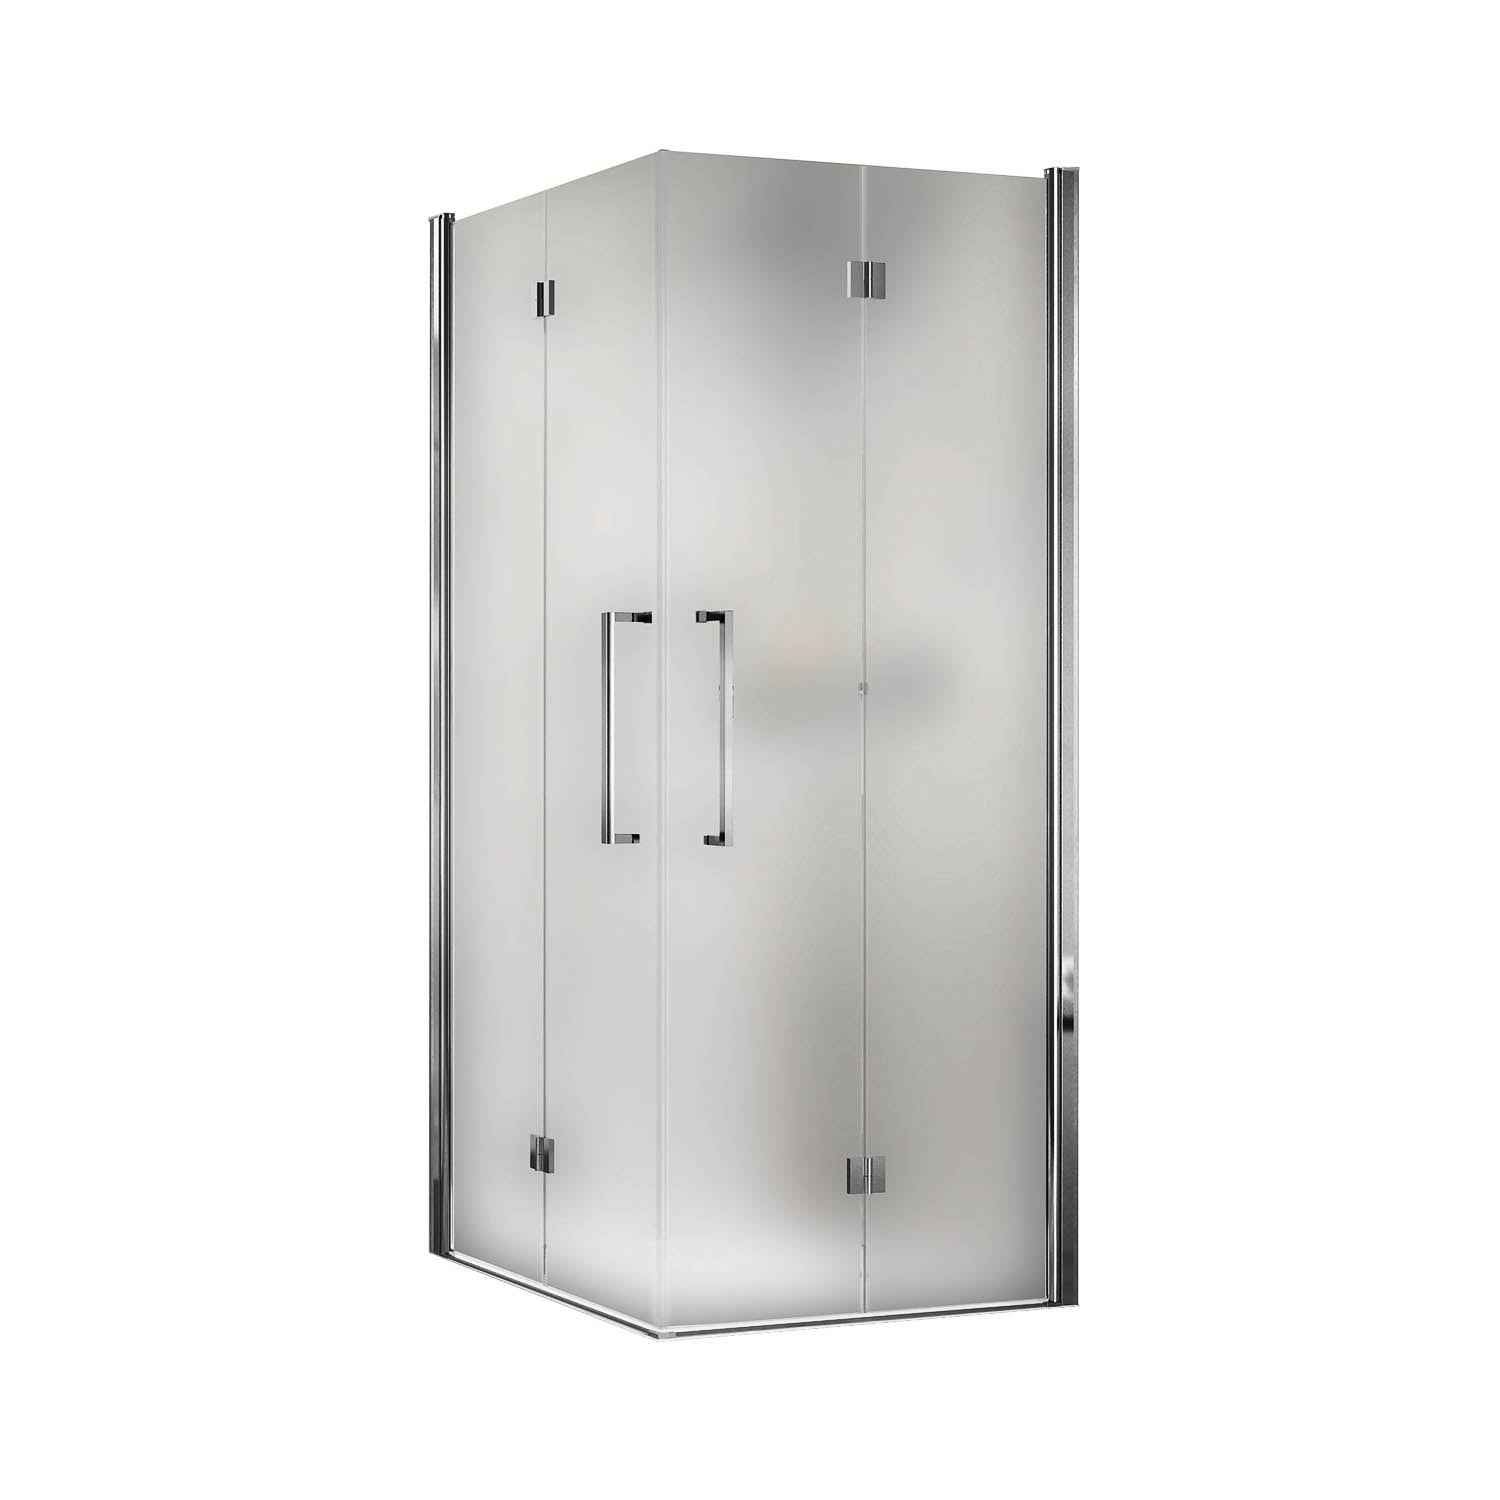 1050-1070mm Bliss Bi-folding Screen Frosted Glass with a chrome finish on a white background